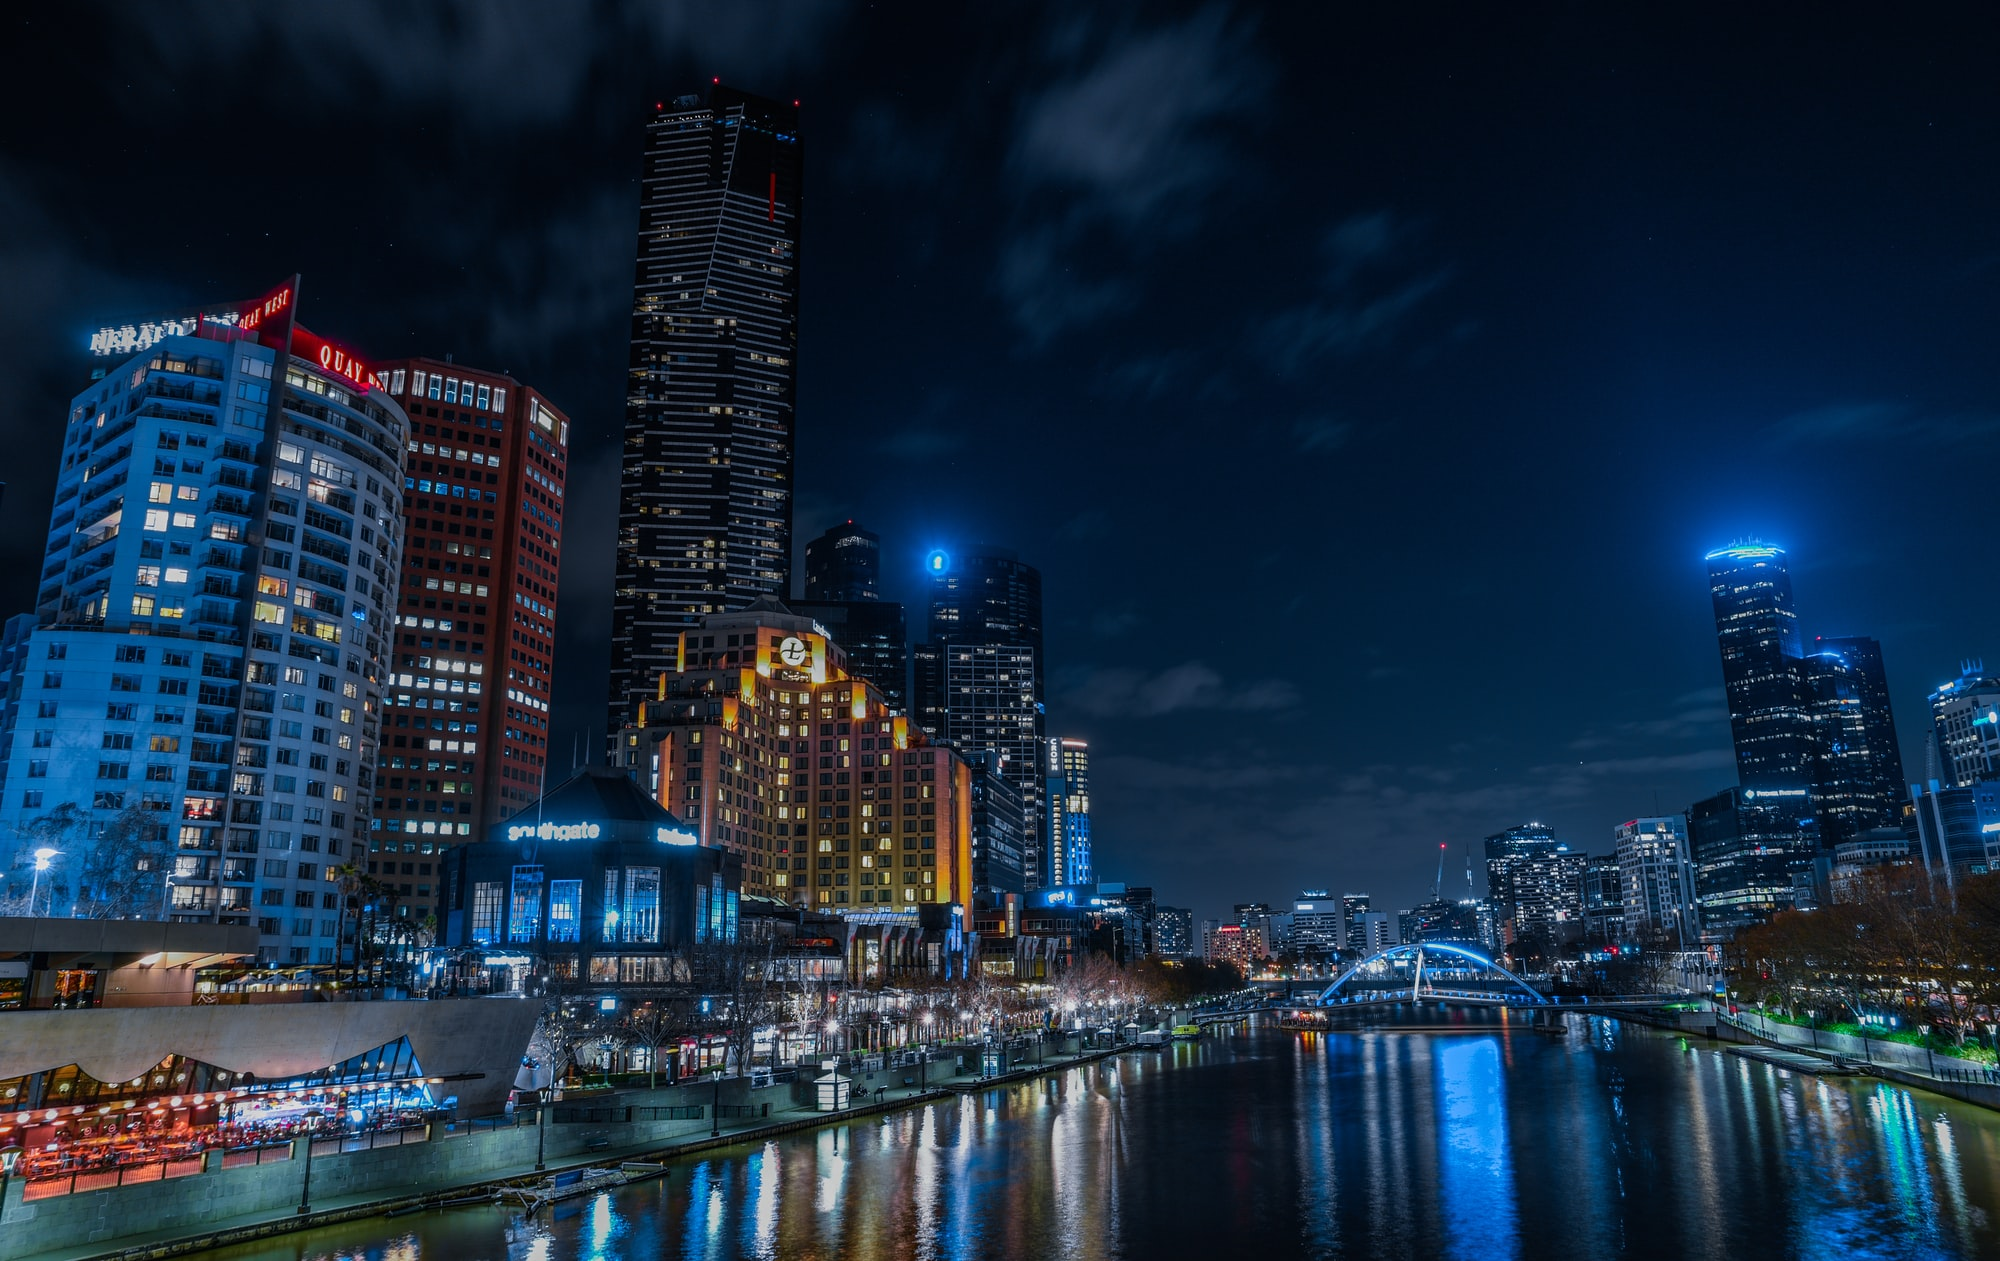 I was walking across the bridge in Melbourne CBD when I saw those amazing city lights … I really wanted to represent the way I see the happiness in Melbourne and the beauty of it during the night.